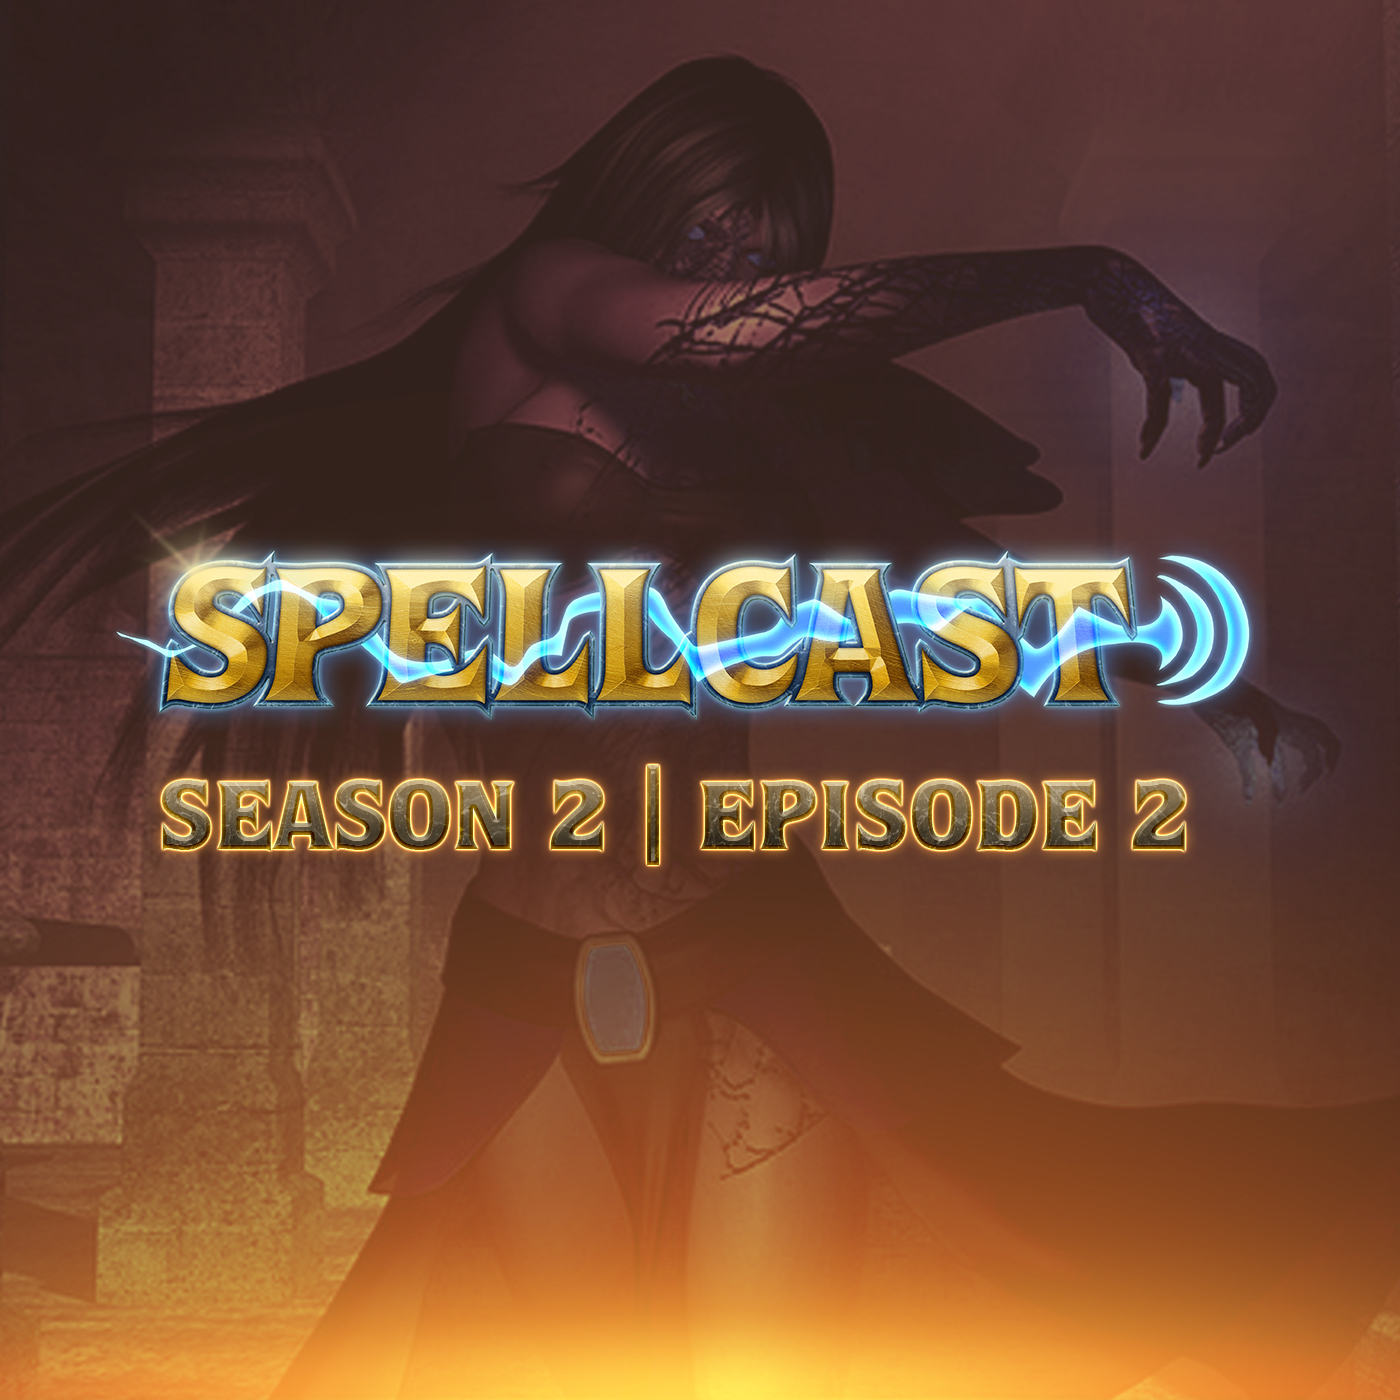 Spellcast Season 2 Episode 2